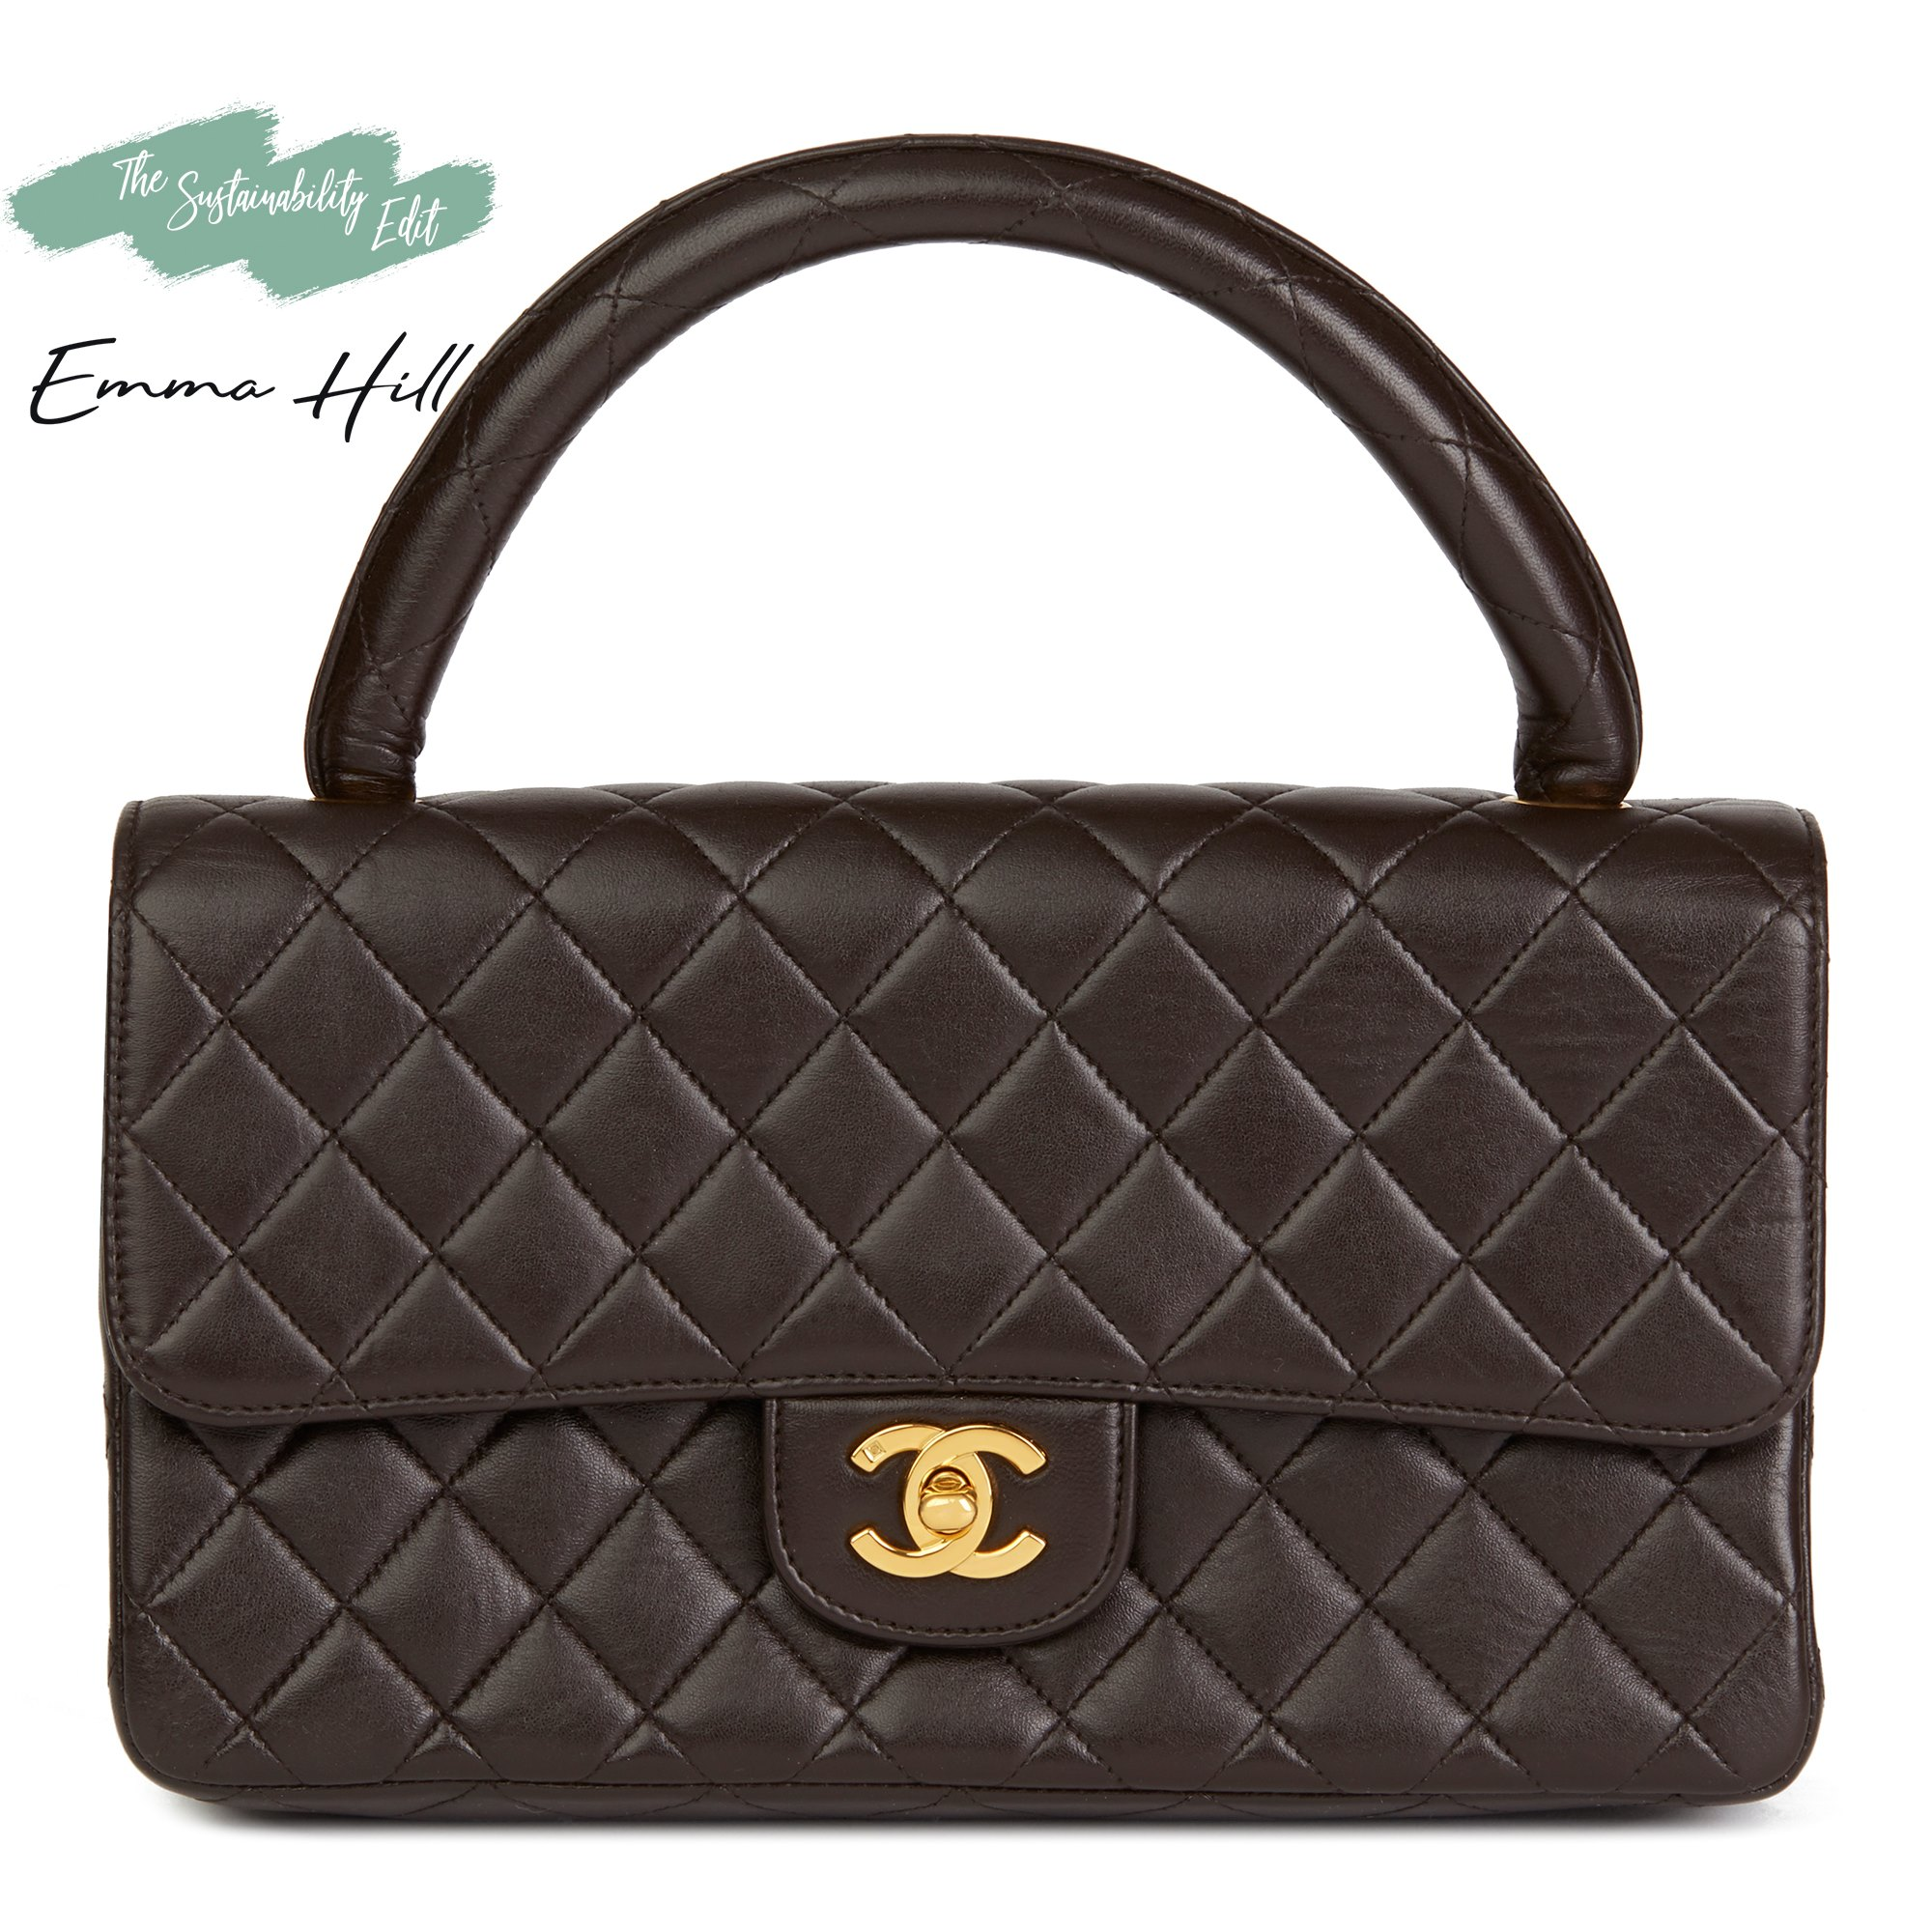 98ffab431197 Chanel Chocolate Brown Quilted Lambskin Vintage Medium Classic Kelly Flap  Bag